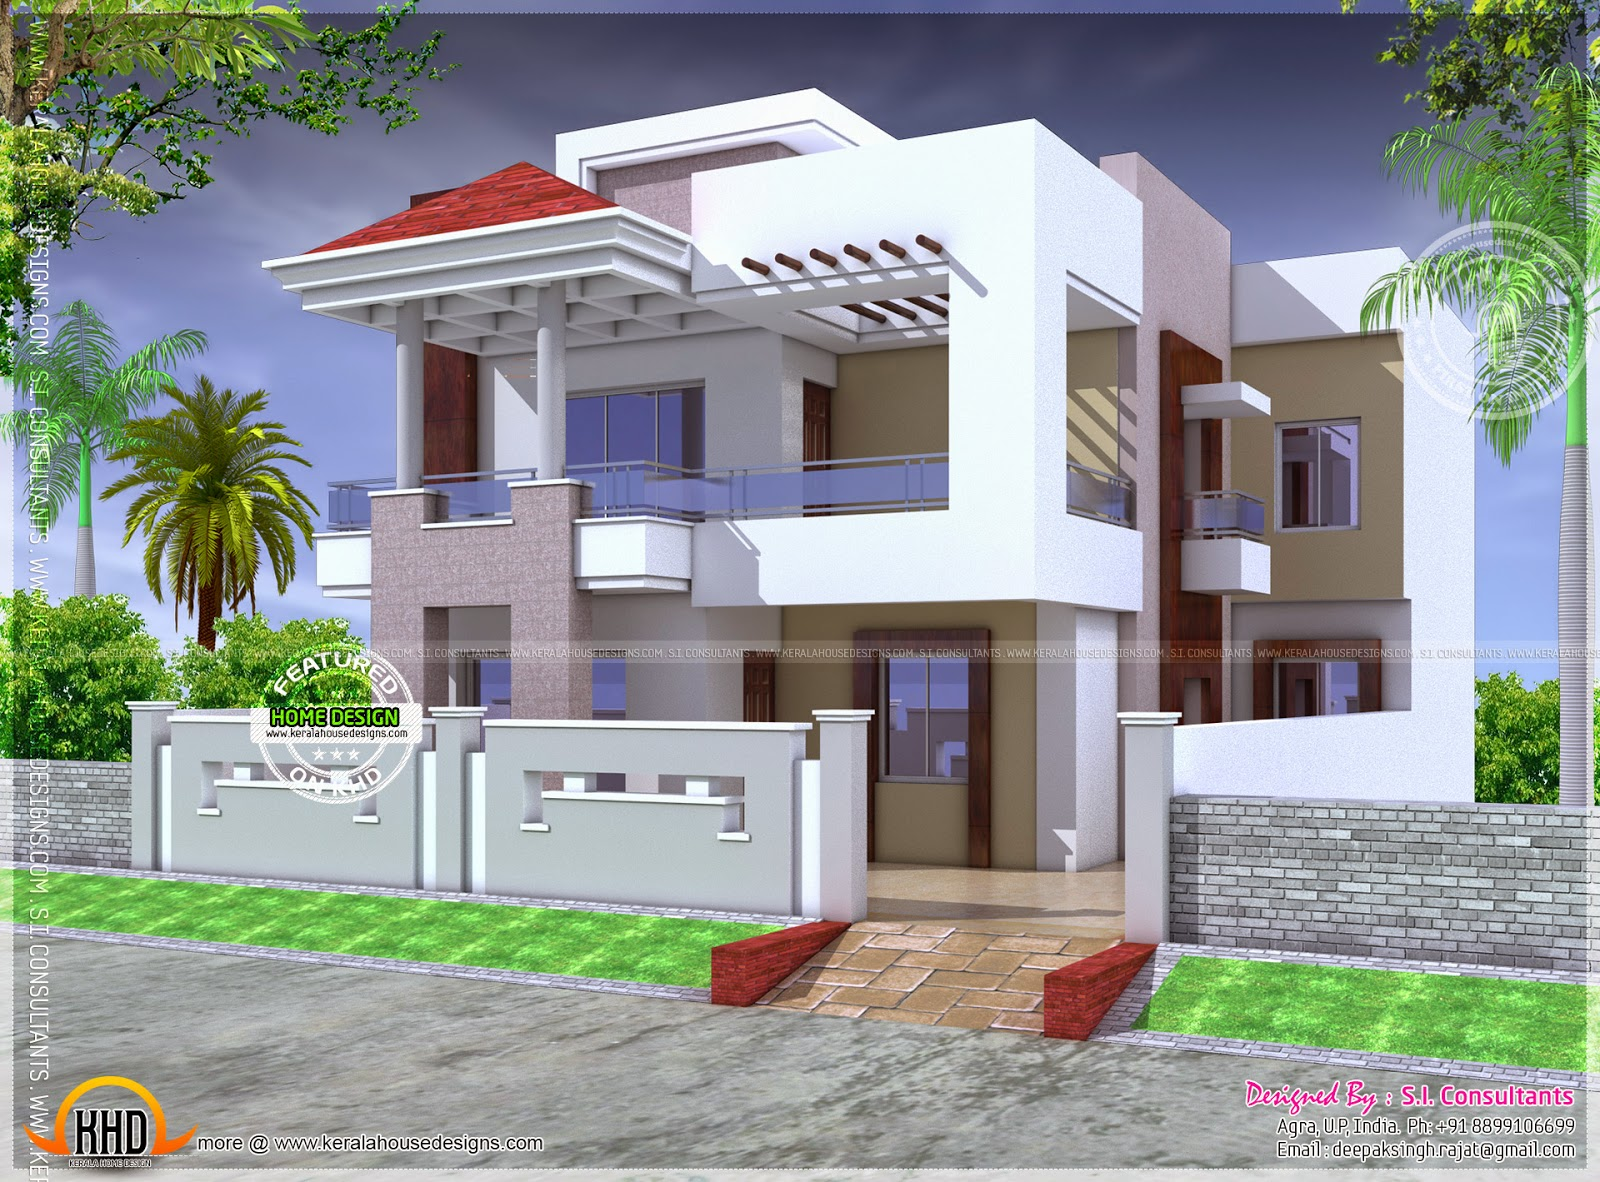 March 2014 kerala home design and floor plans for South indian small house designs